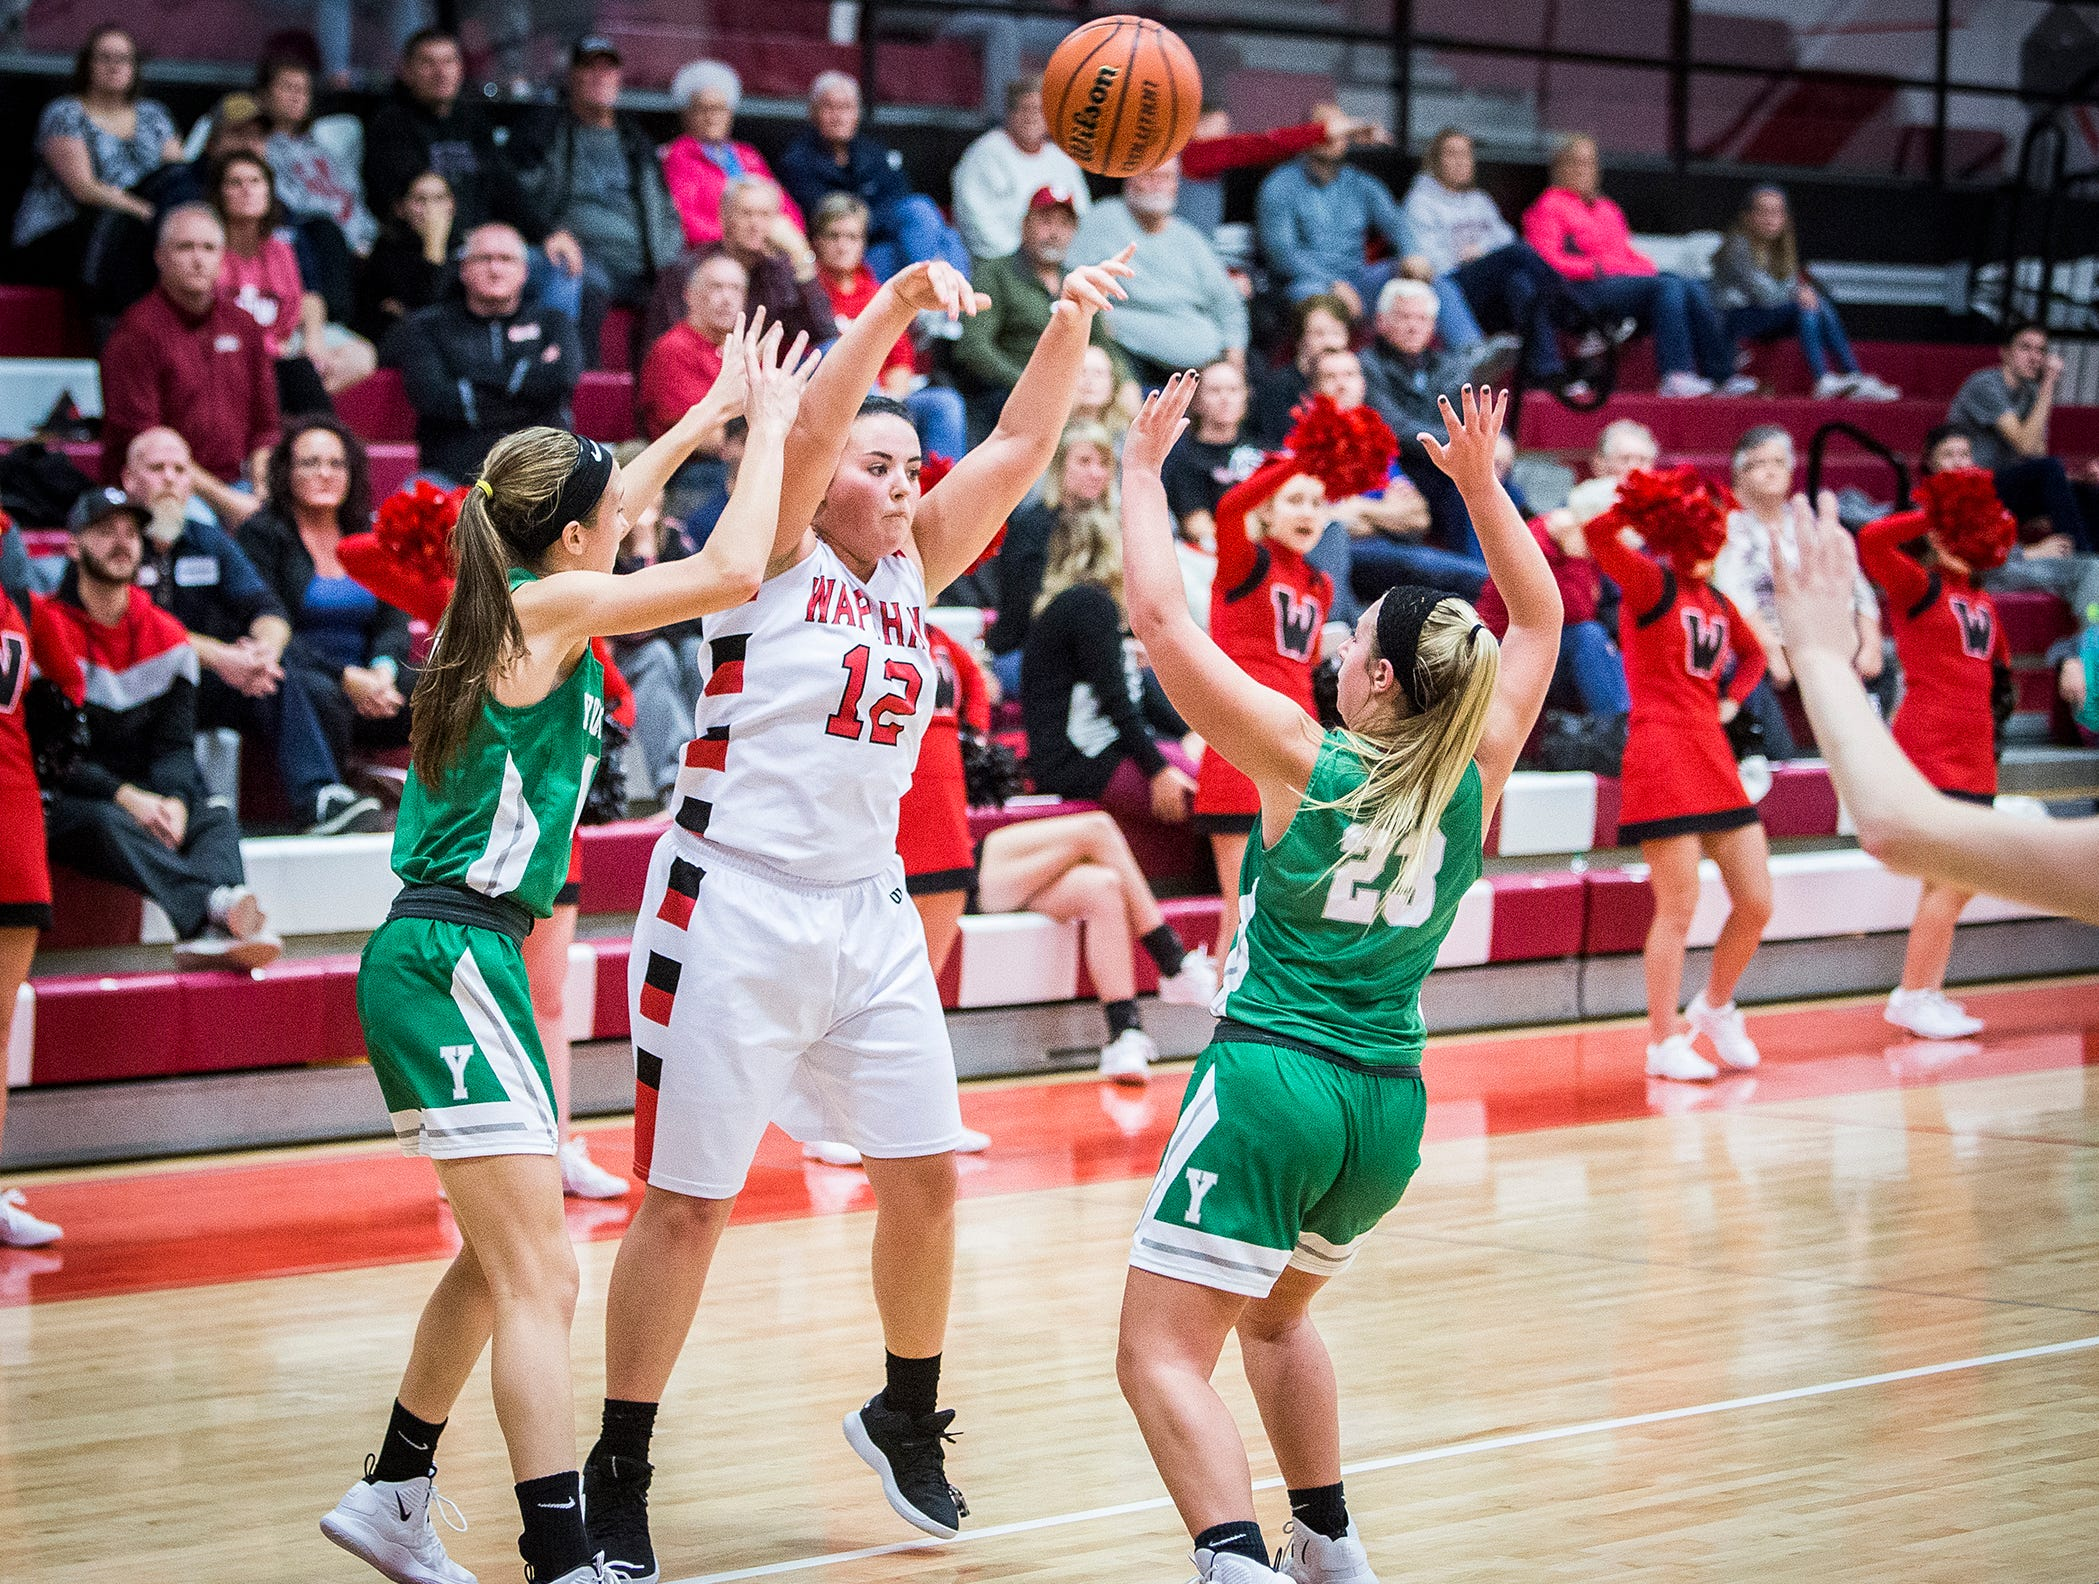 Wapahani's Dayten Lee passes over Yorktown's defense during their game at Wapahani High School Tuesday, Dec. 4, 2018.